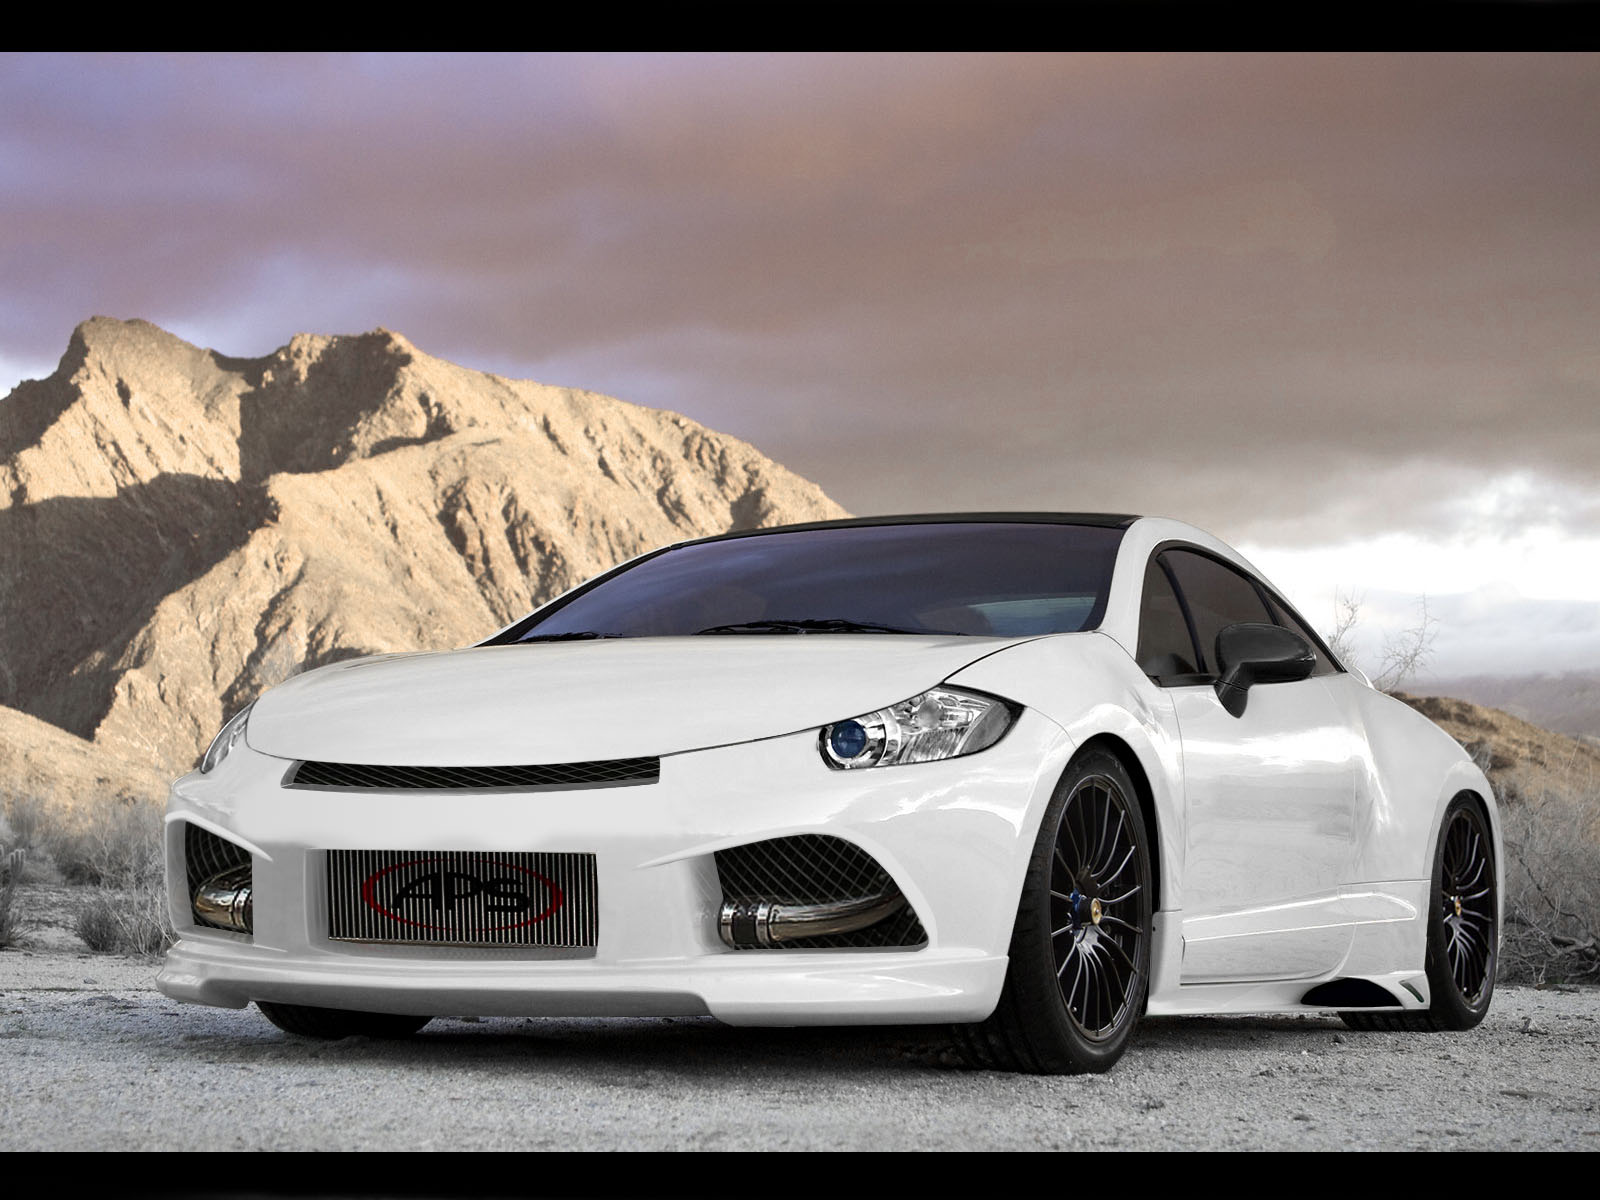 Mitsubishi Eclipse GT Front View HD Wallpaper